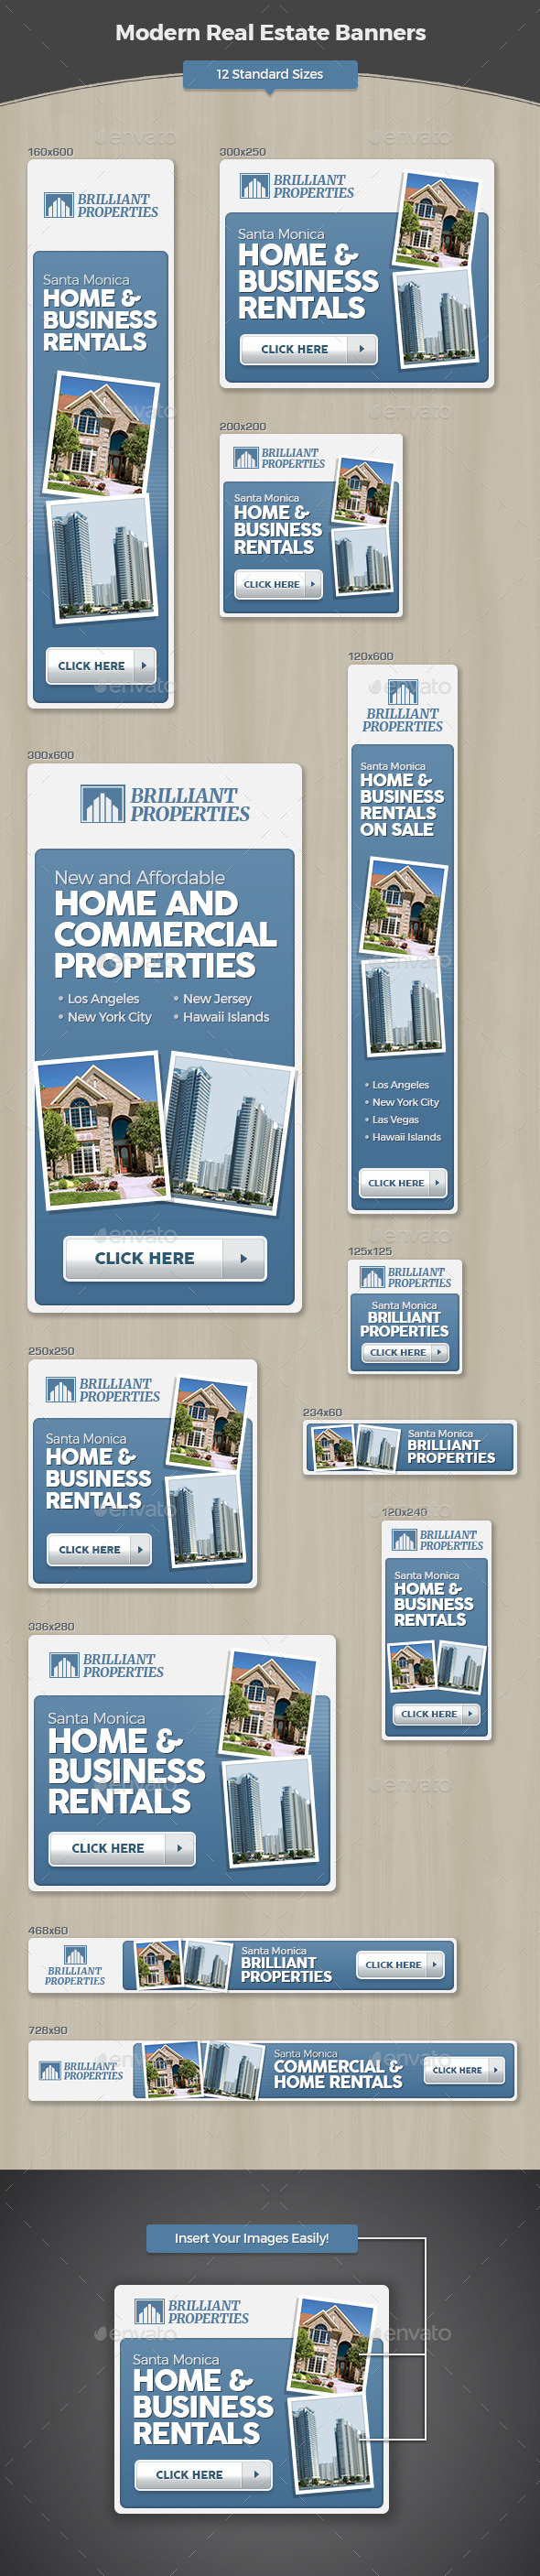 GraphicRiver Modern Real Estate Banners 11845804